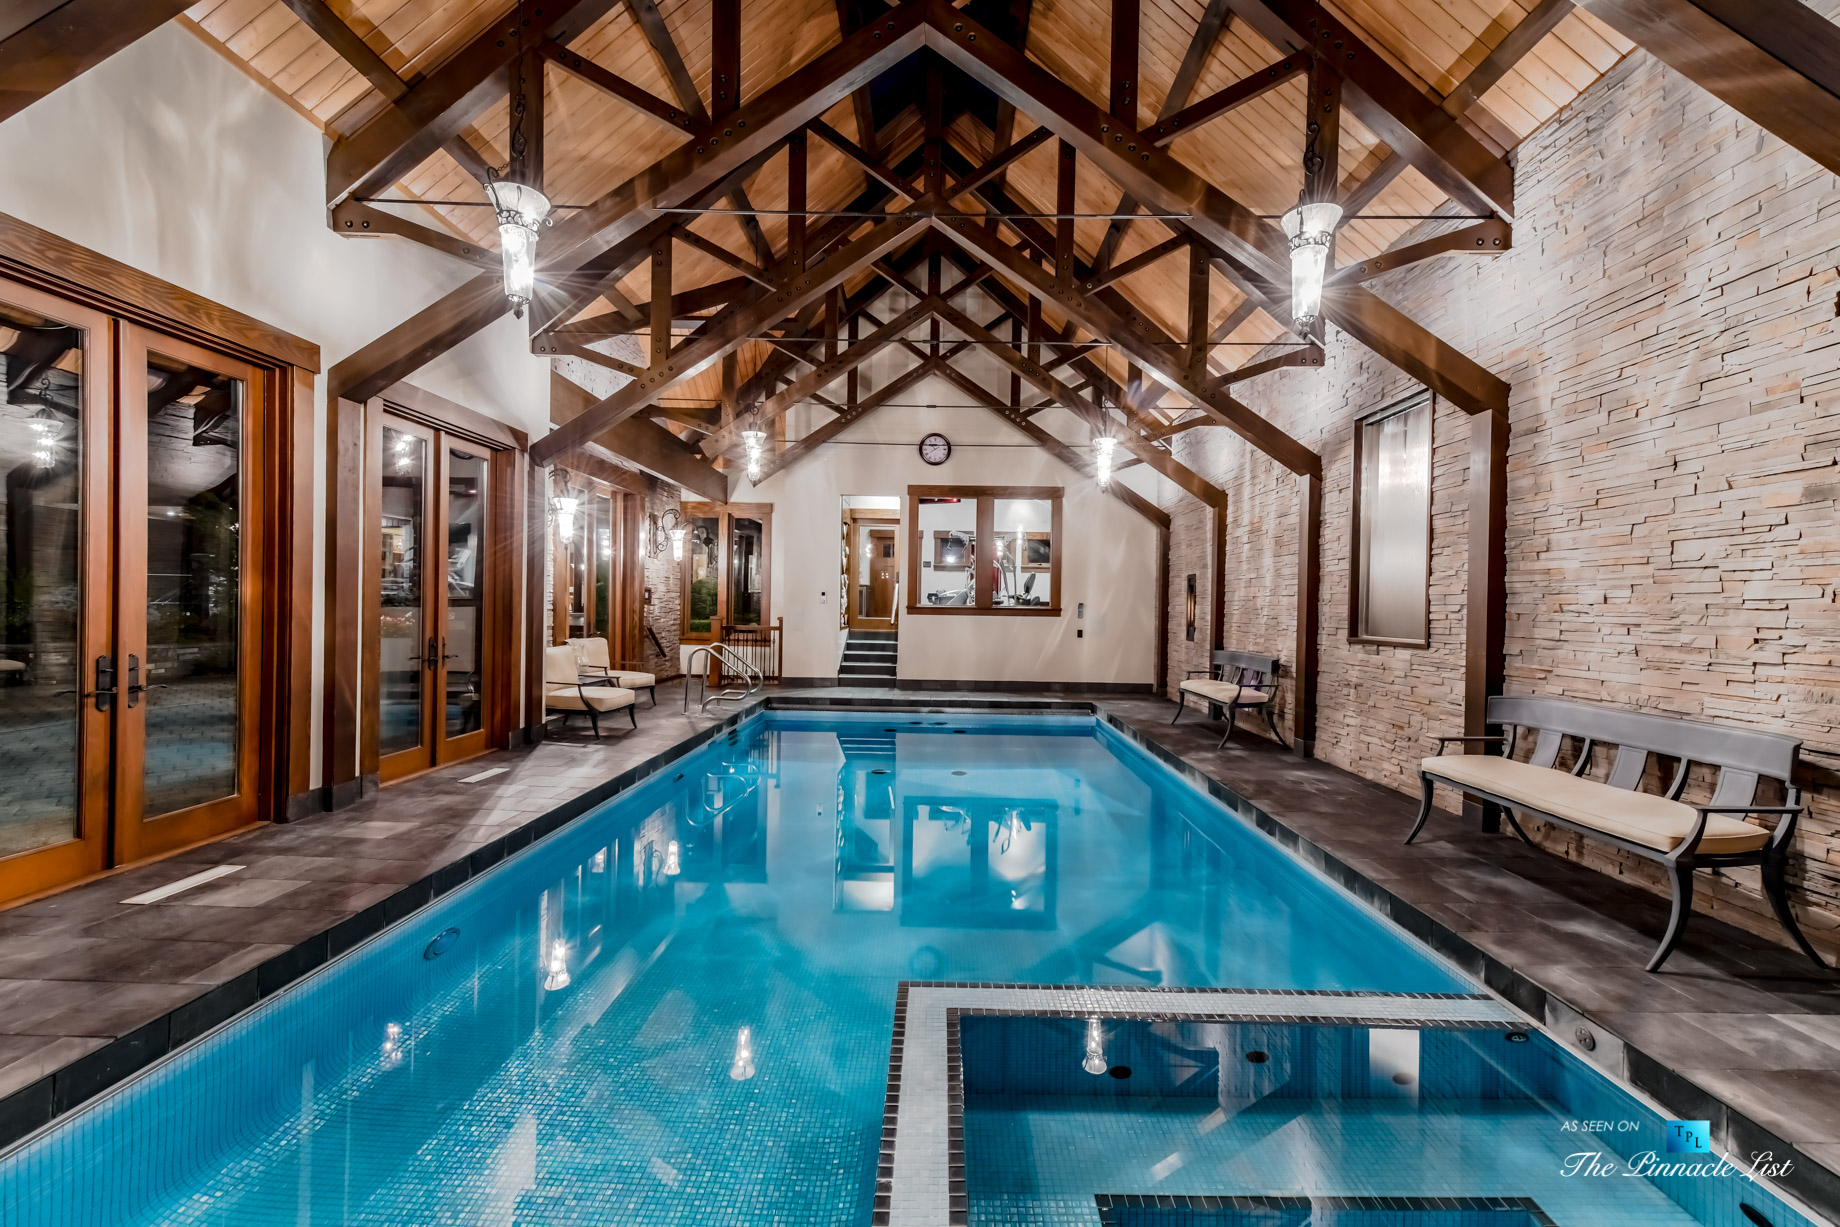 Spectacular Mountain View Estate – 3053 Anmore Creek Way, Anmore, BC, Canada